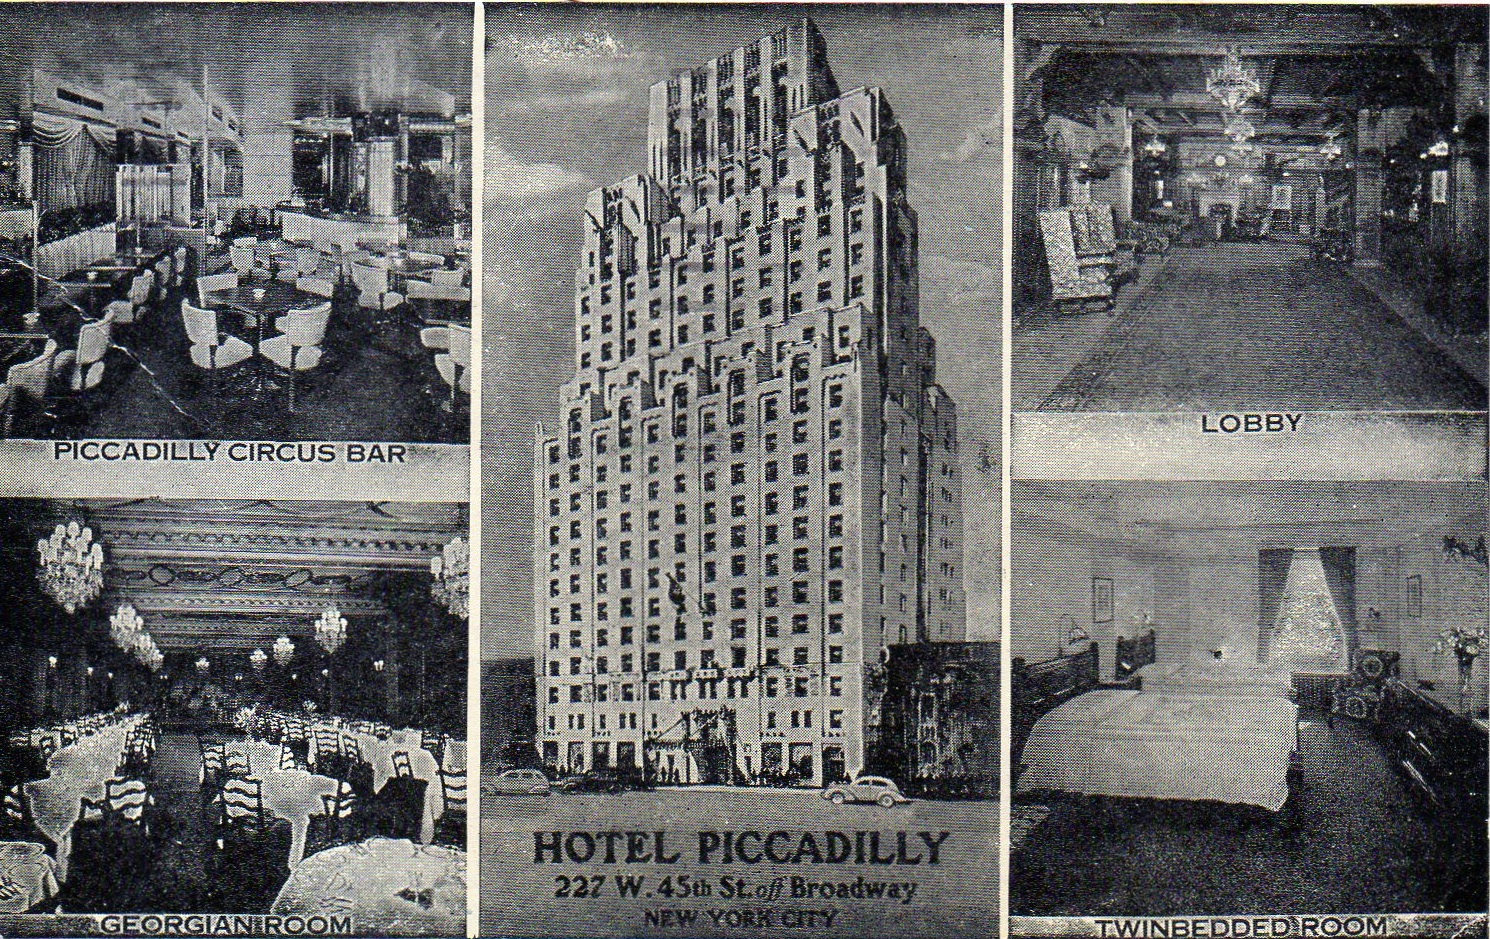 Hotel Piccadilly Toast Of The Theater District